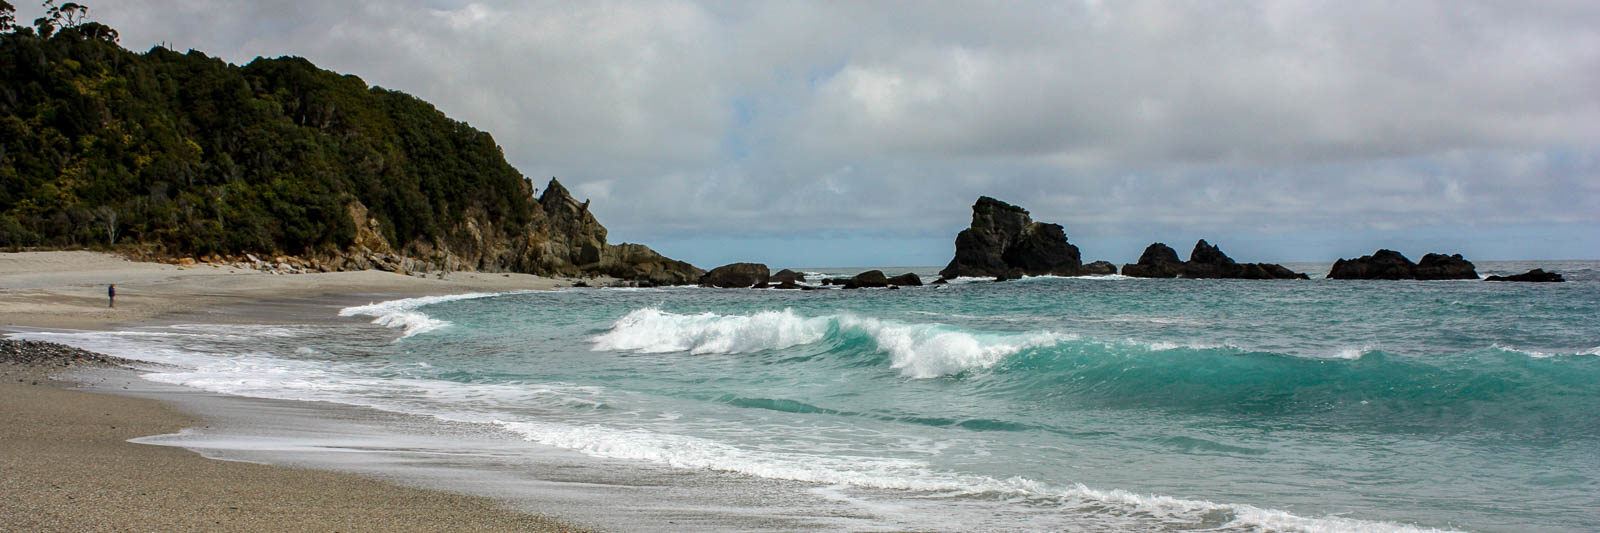 Monro Beach on the West Coast of the South Island of New Zealand